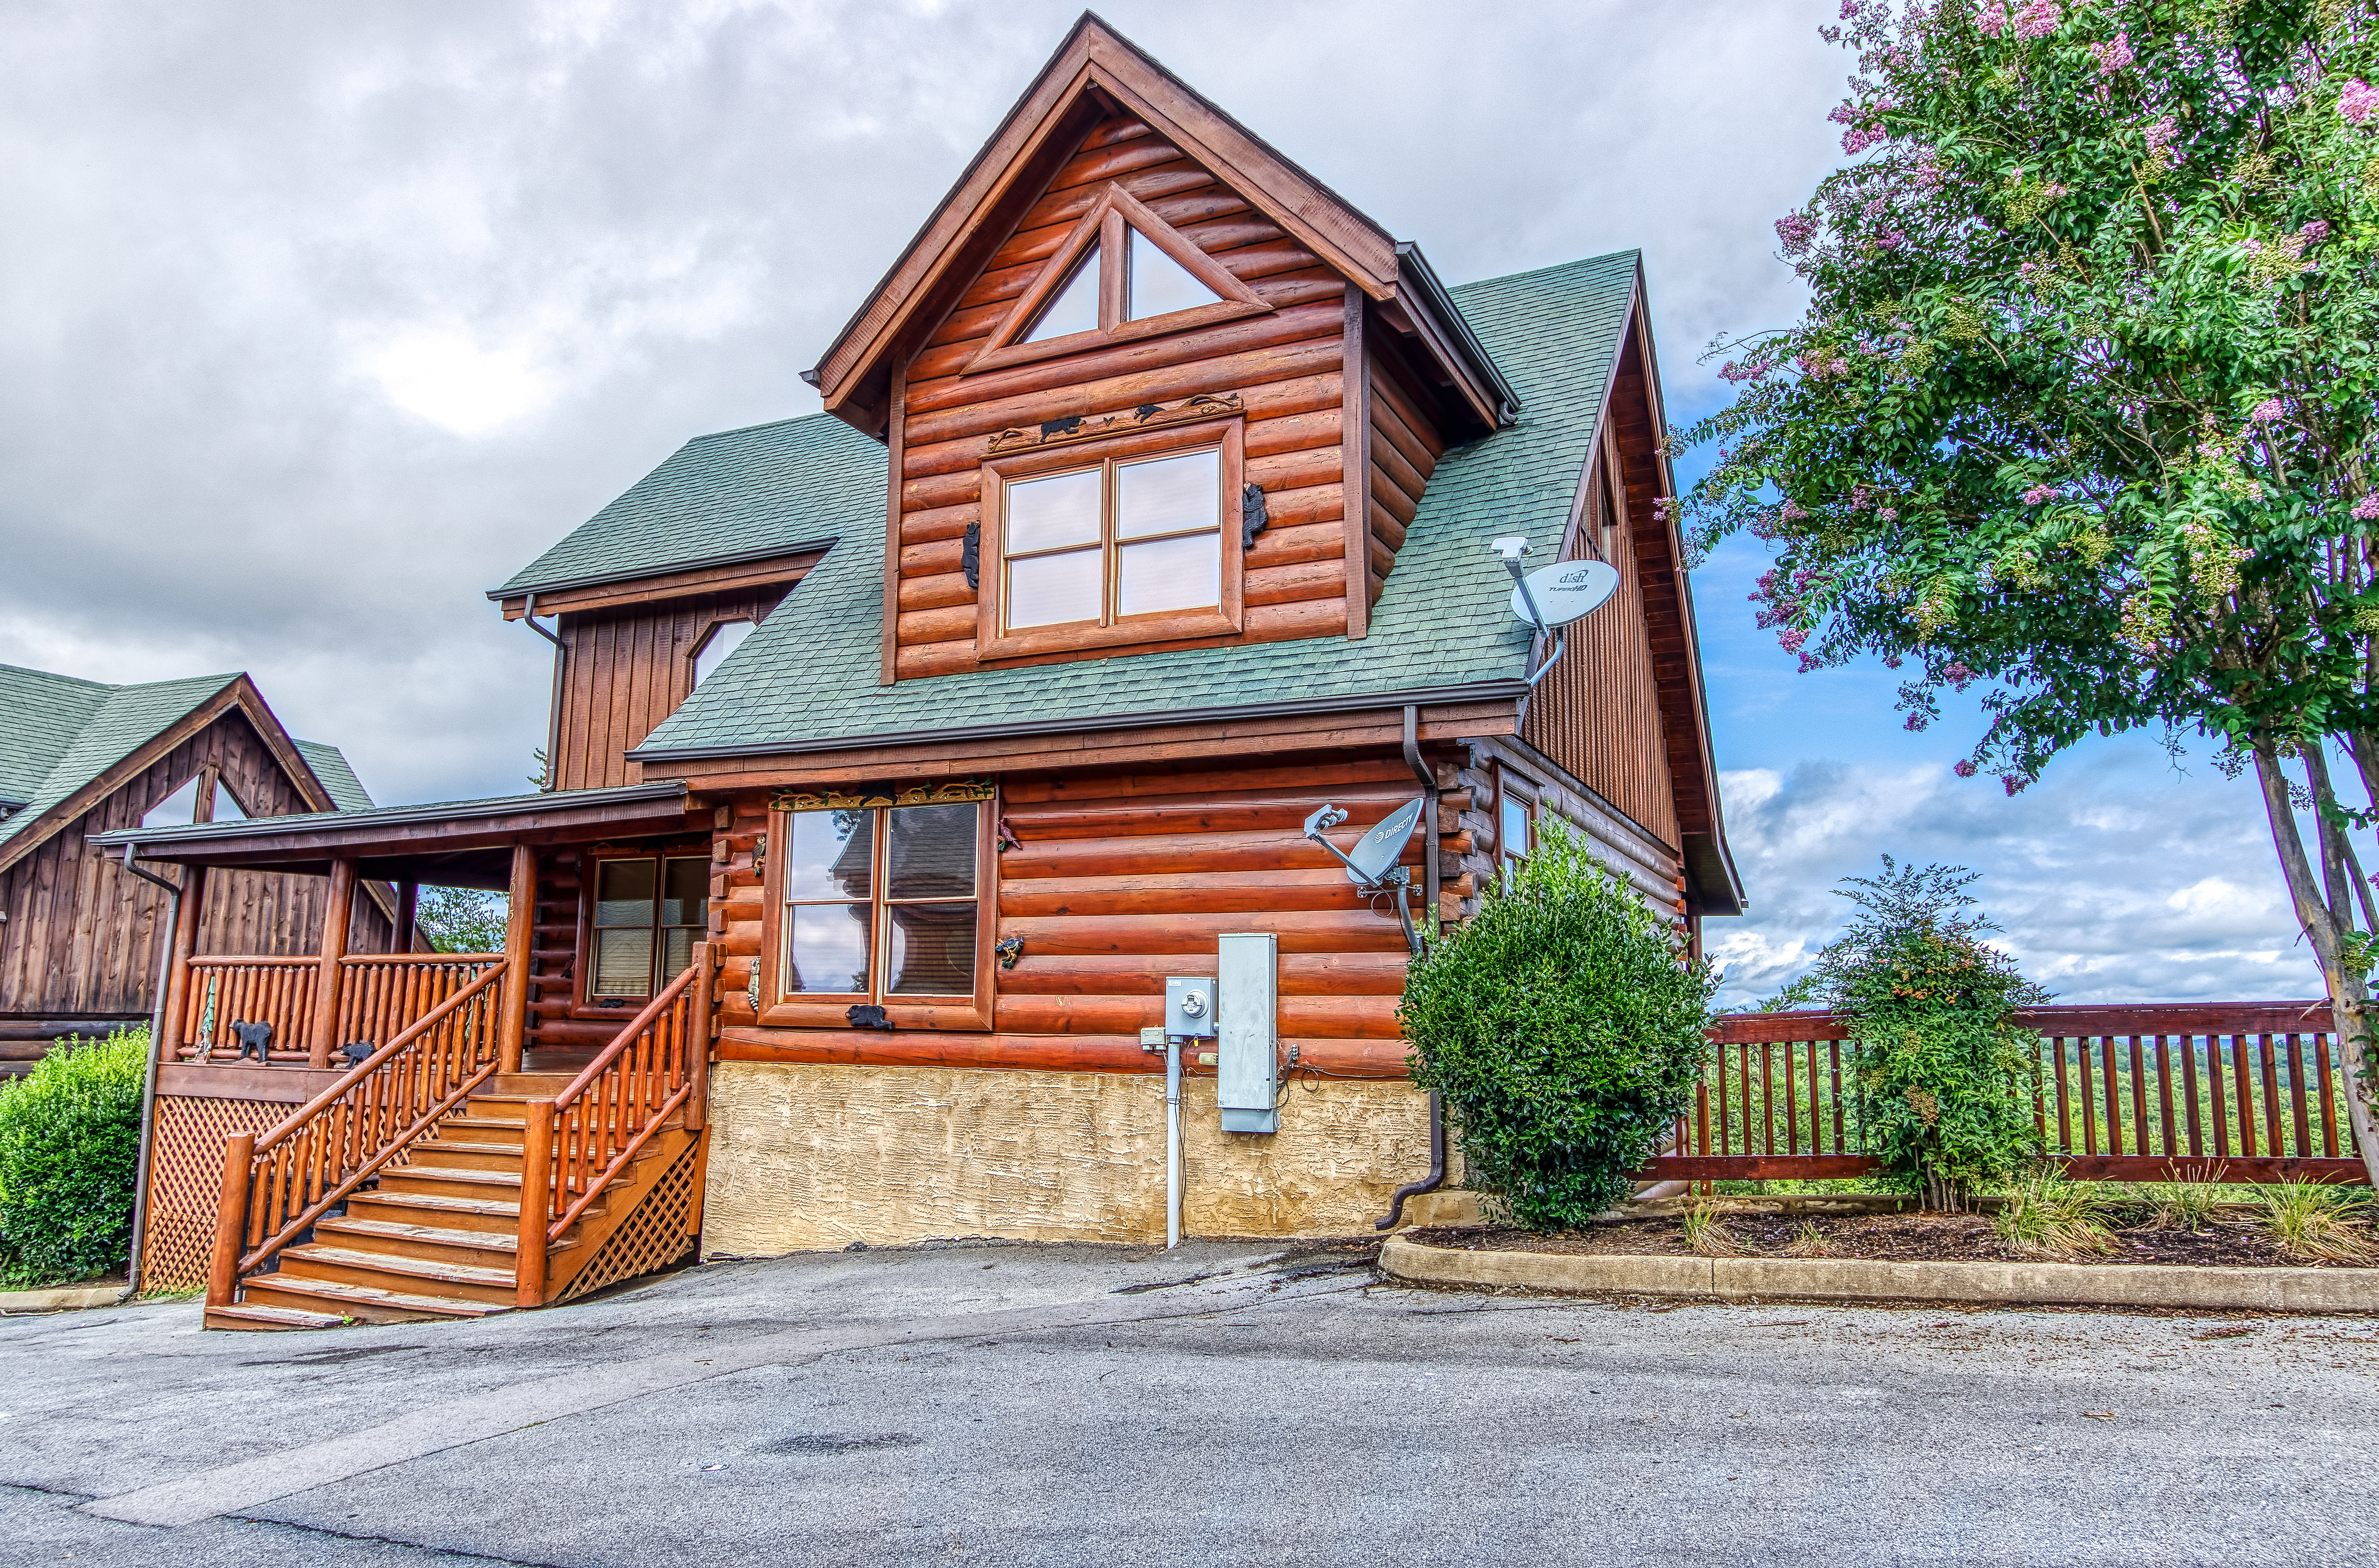 Tennessee Star Lodge - Vacation Rental in Sevierville,TN ...